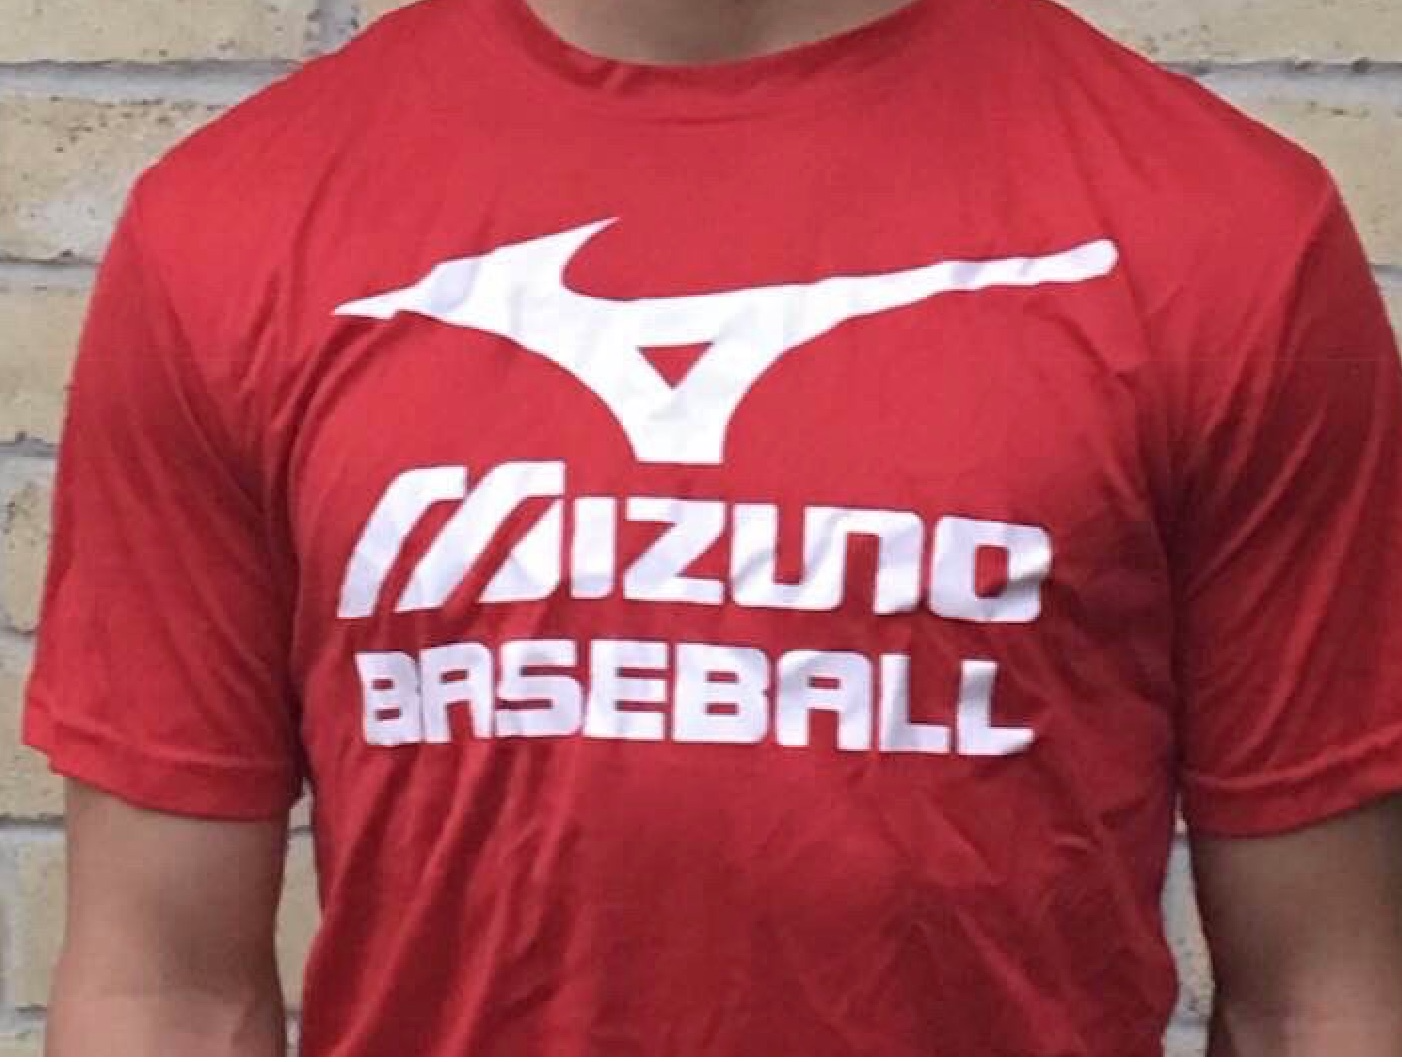 Red and White Mizuno Baseball USA Shirt